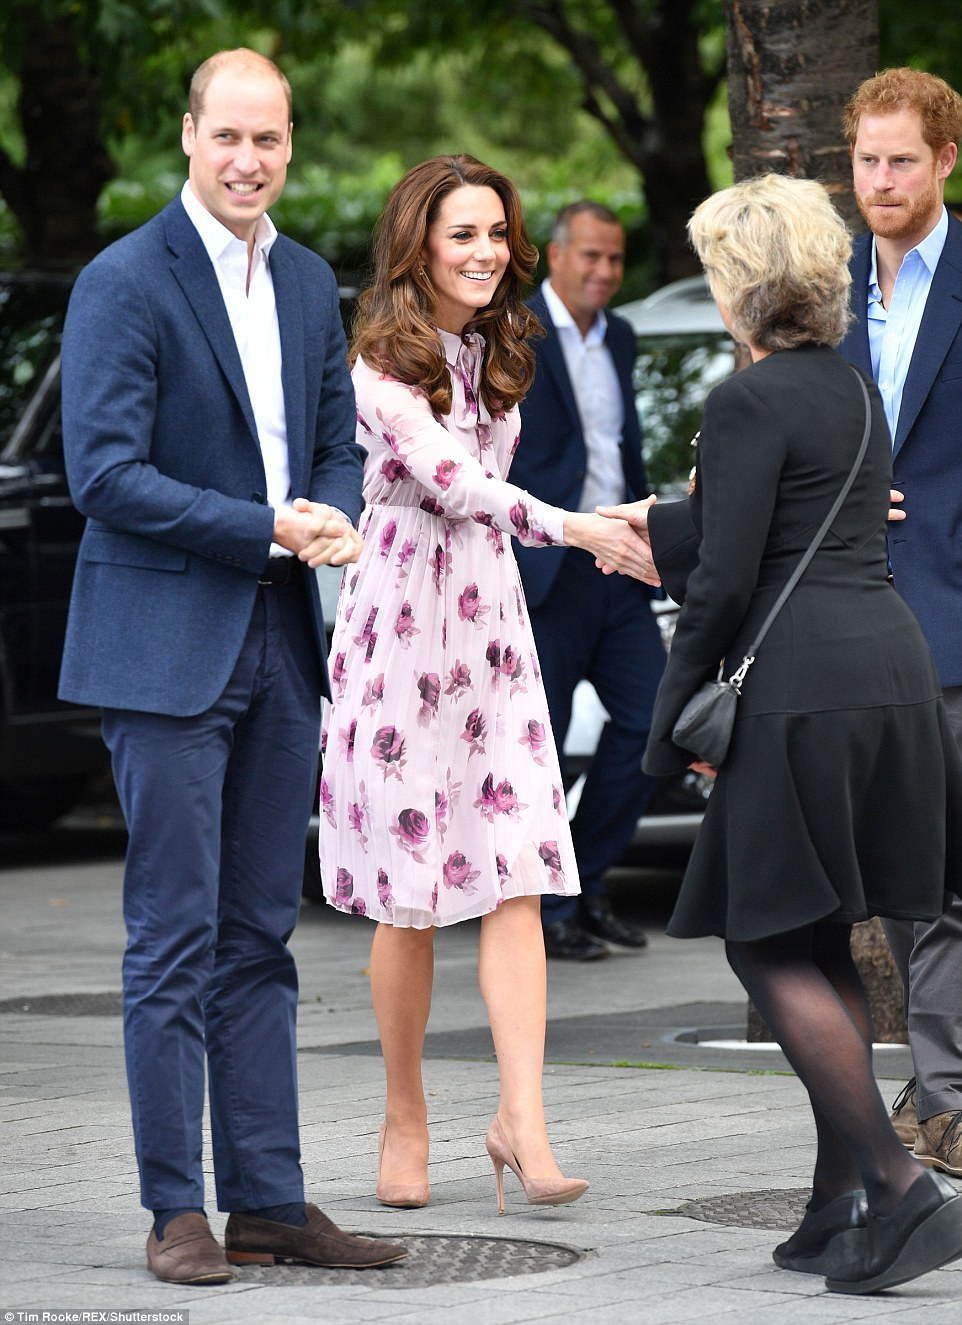 Outside the Eye the royals were greeted by Rosi Prescott, Deputy Lord Lieutenant for Lambeth